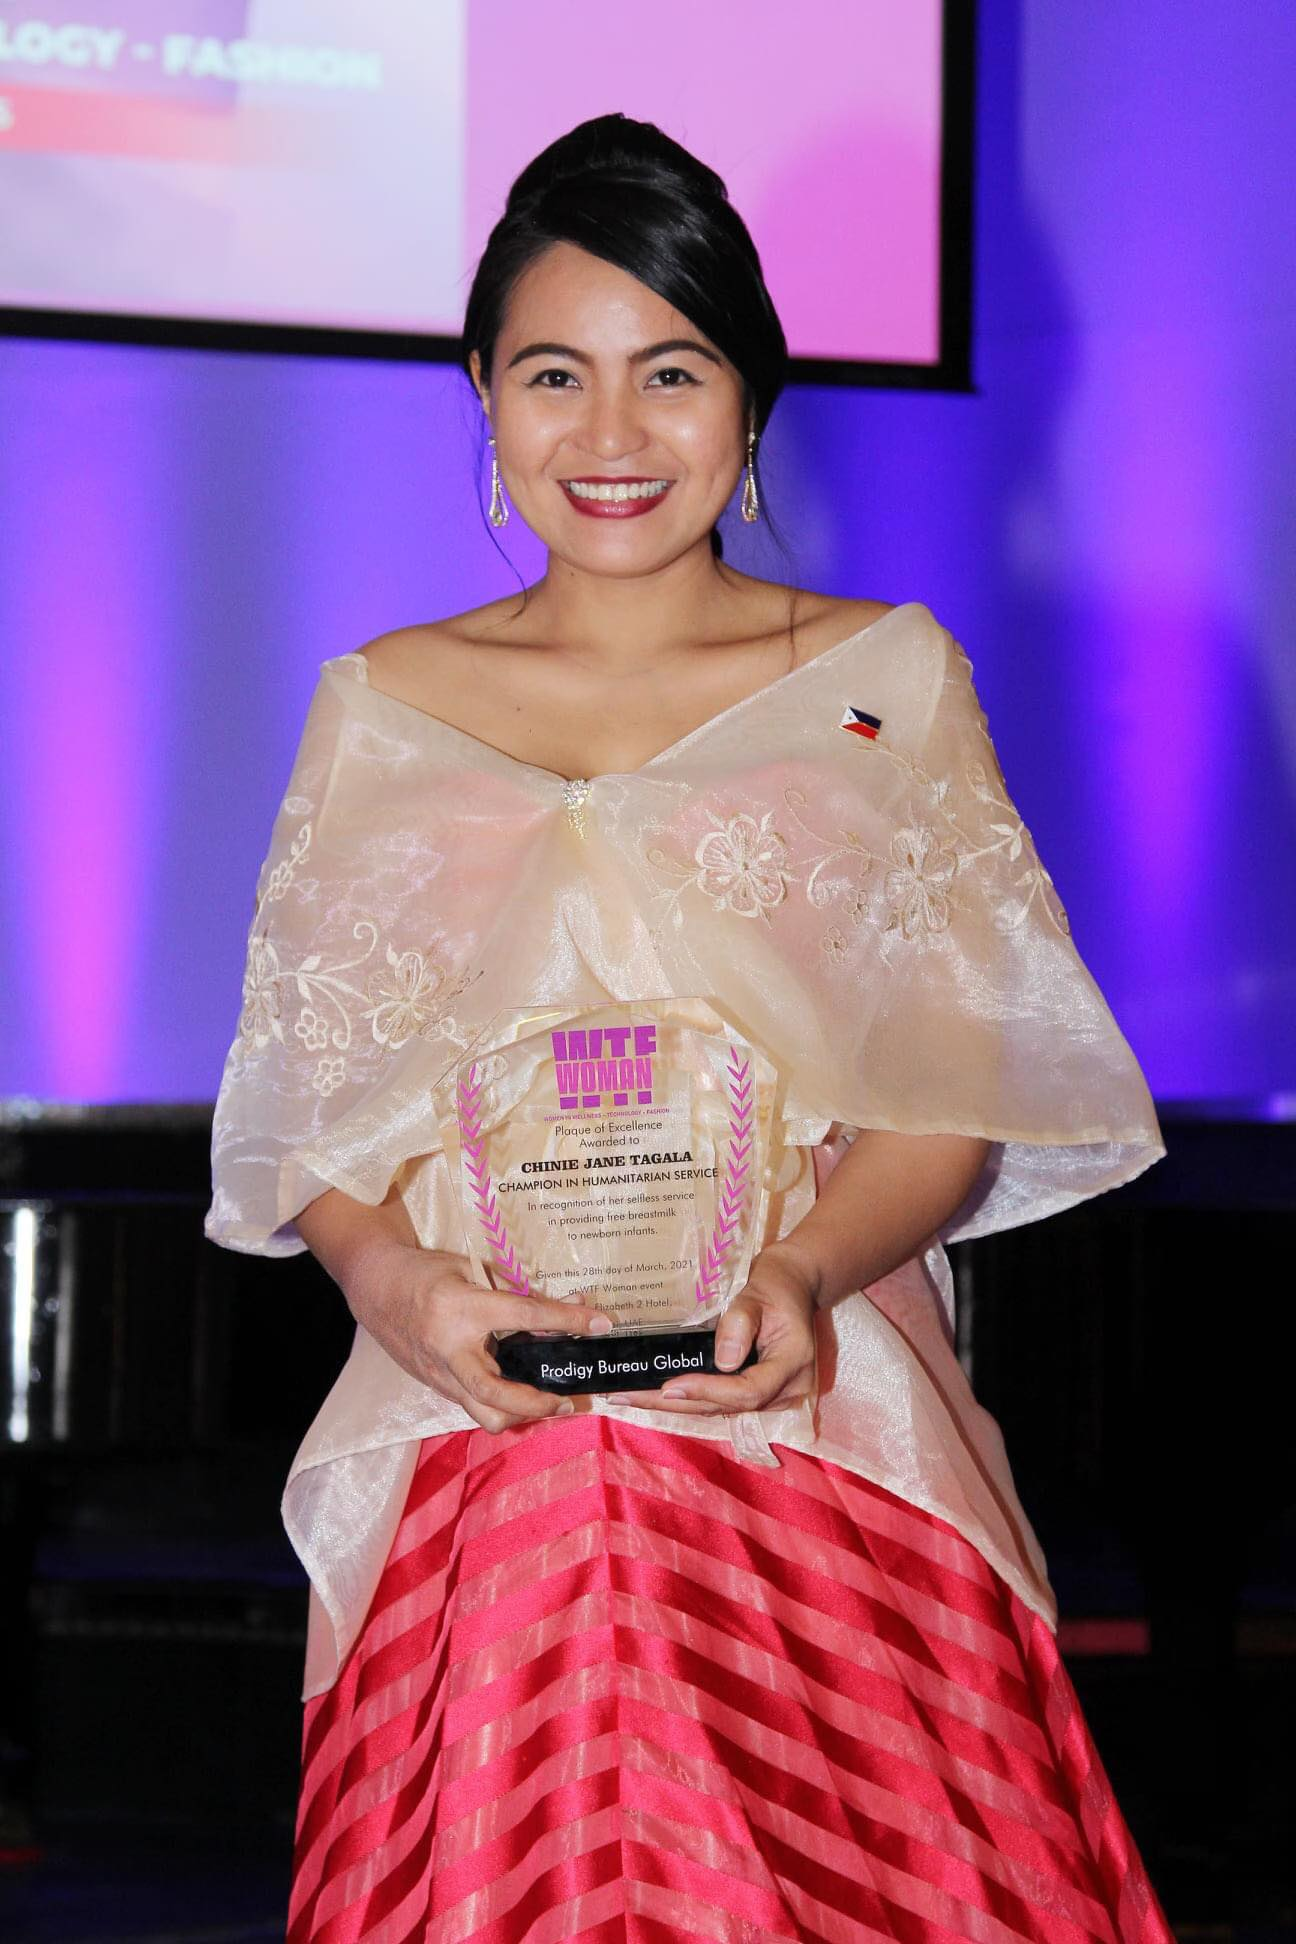 Pinay wins an award for donating her breast milk